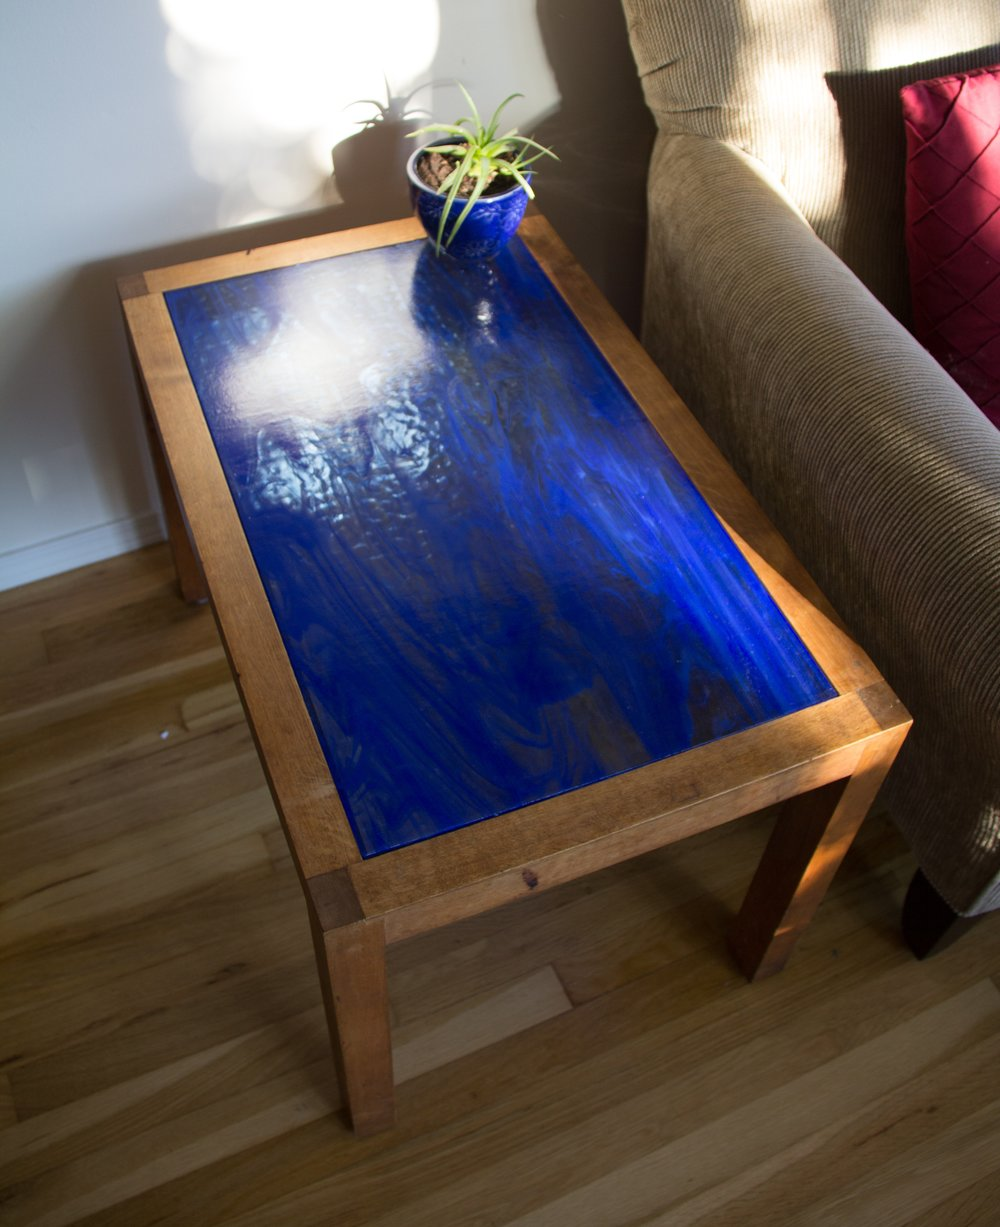 End Table (2013) - Art Glass & Refurbished End Table